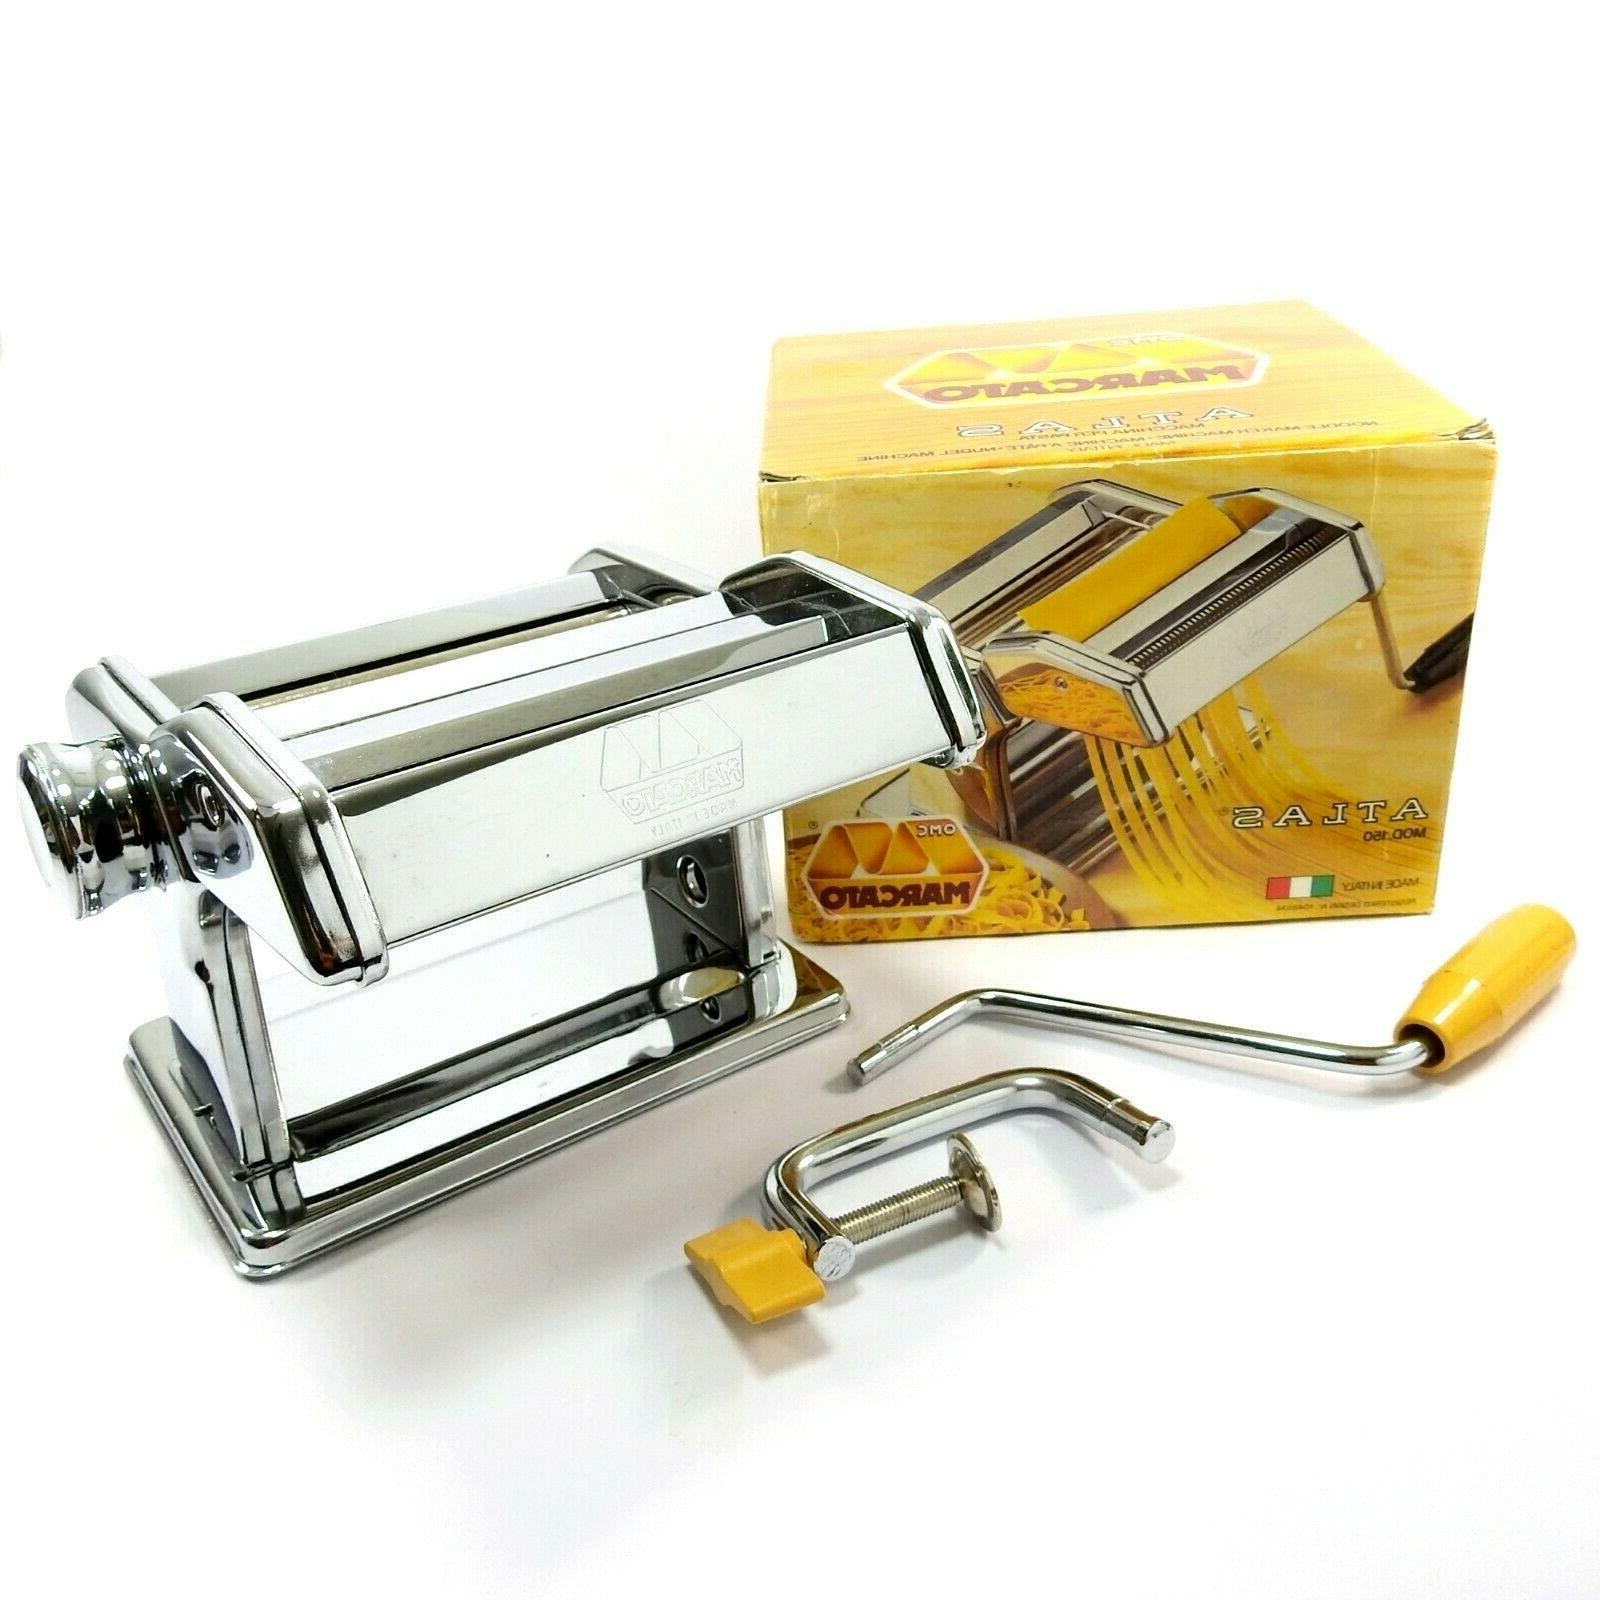 Marcato Atlas 150 Manual Noodle Pasta Maker 8320 Used